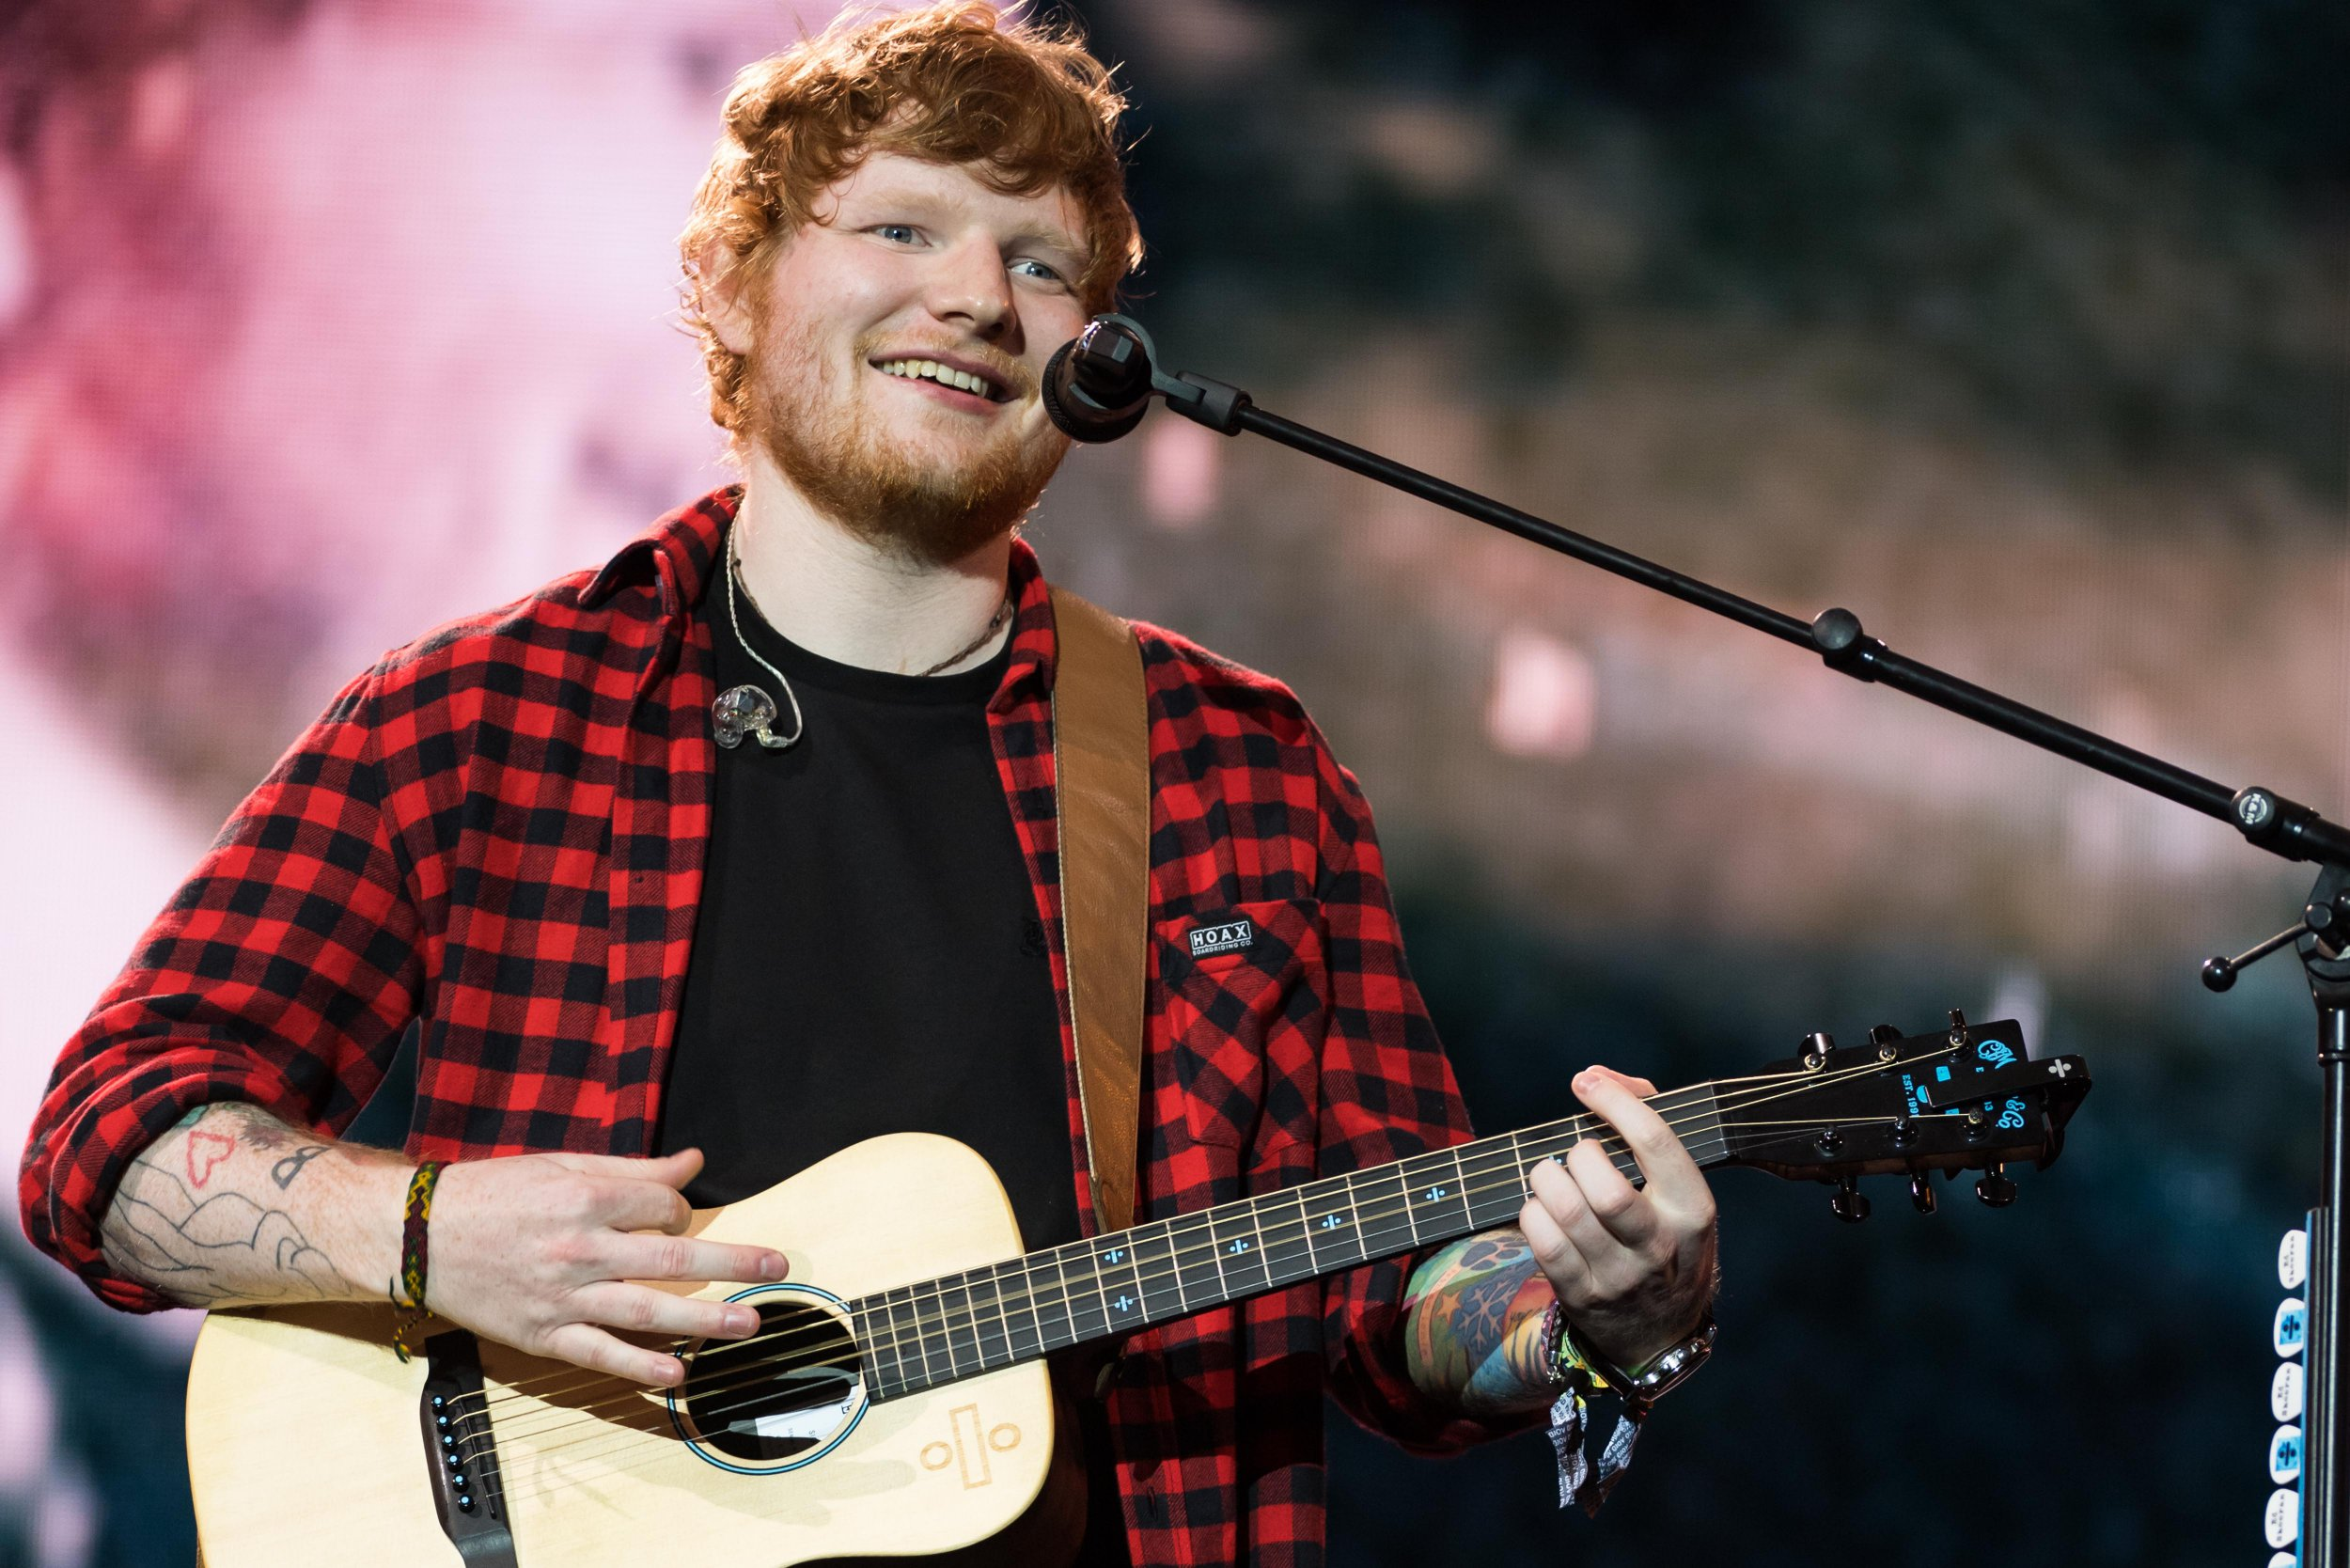 Ticket touts will now face 'unlimited fines' for using bots as Ed Sheeran slams websites for restricting fans